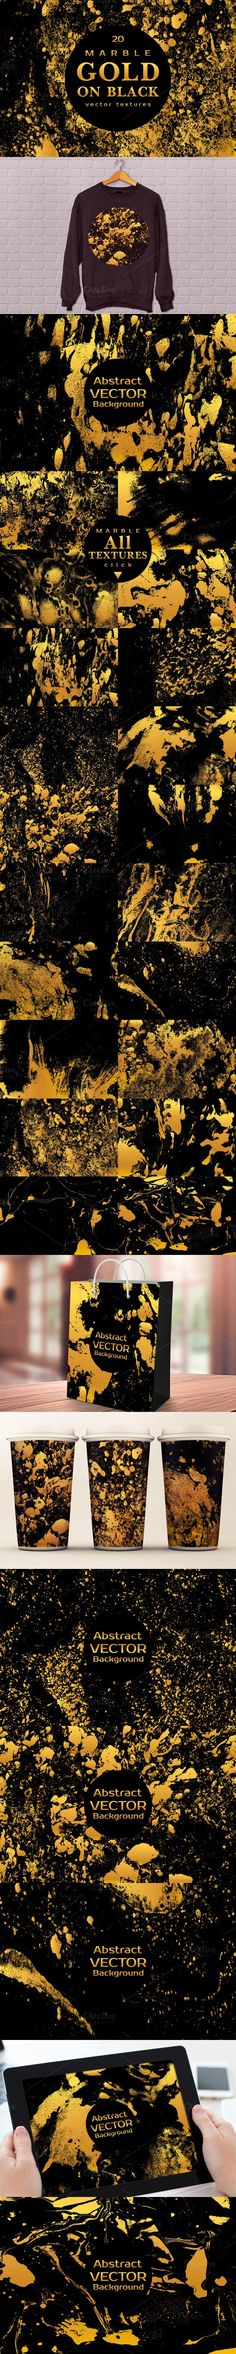 MARBLE GOLD ON BLACK Vector Textures